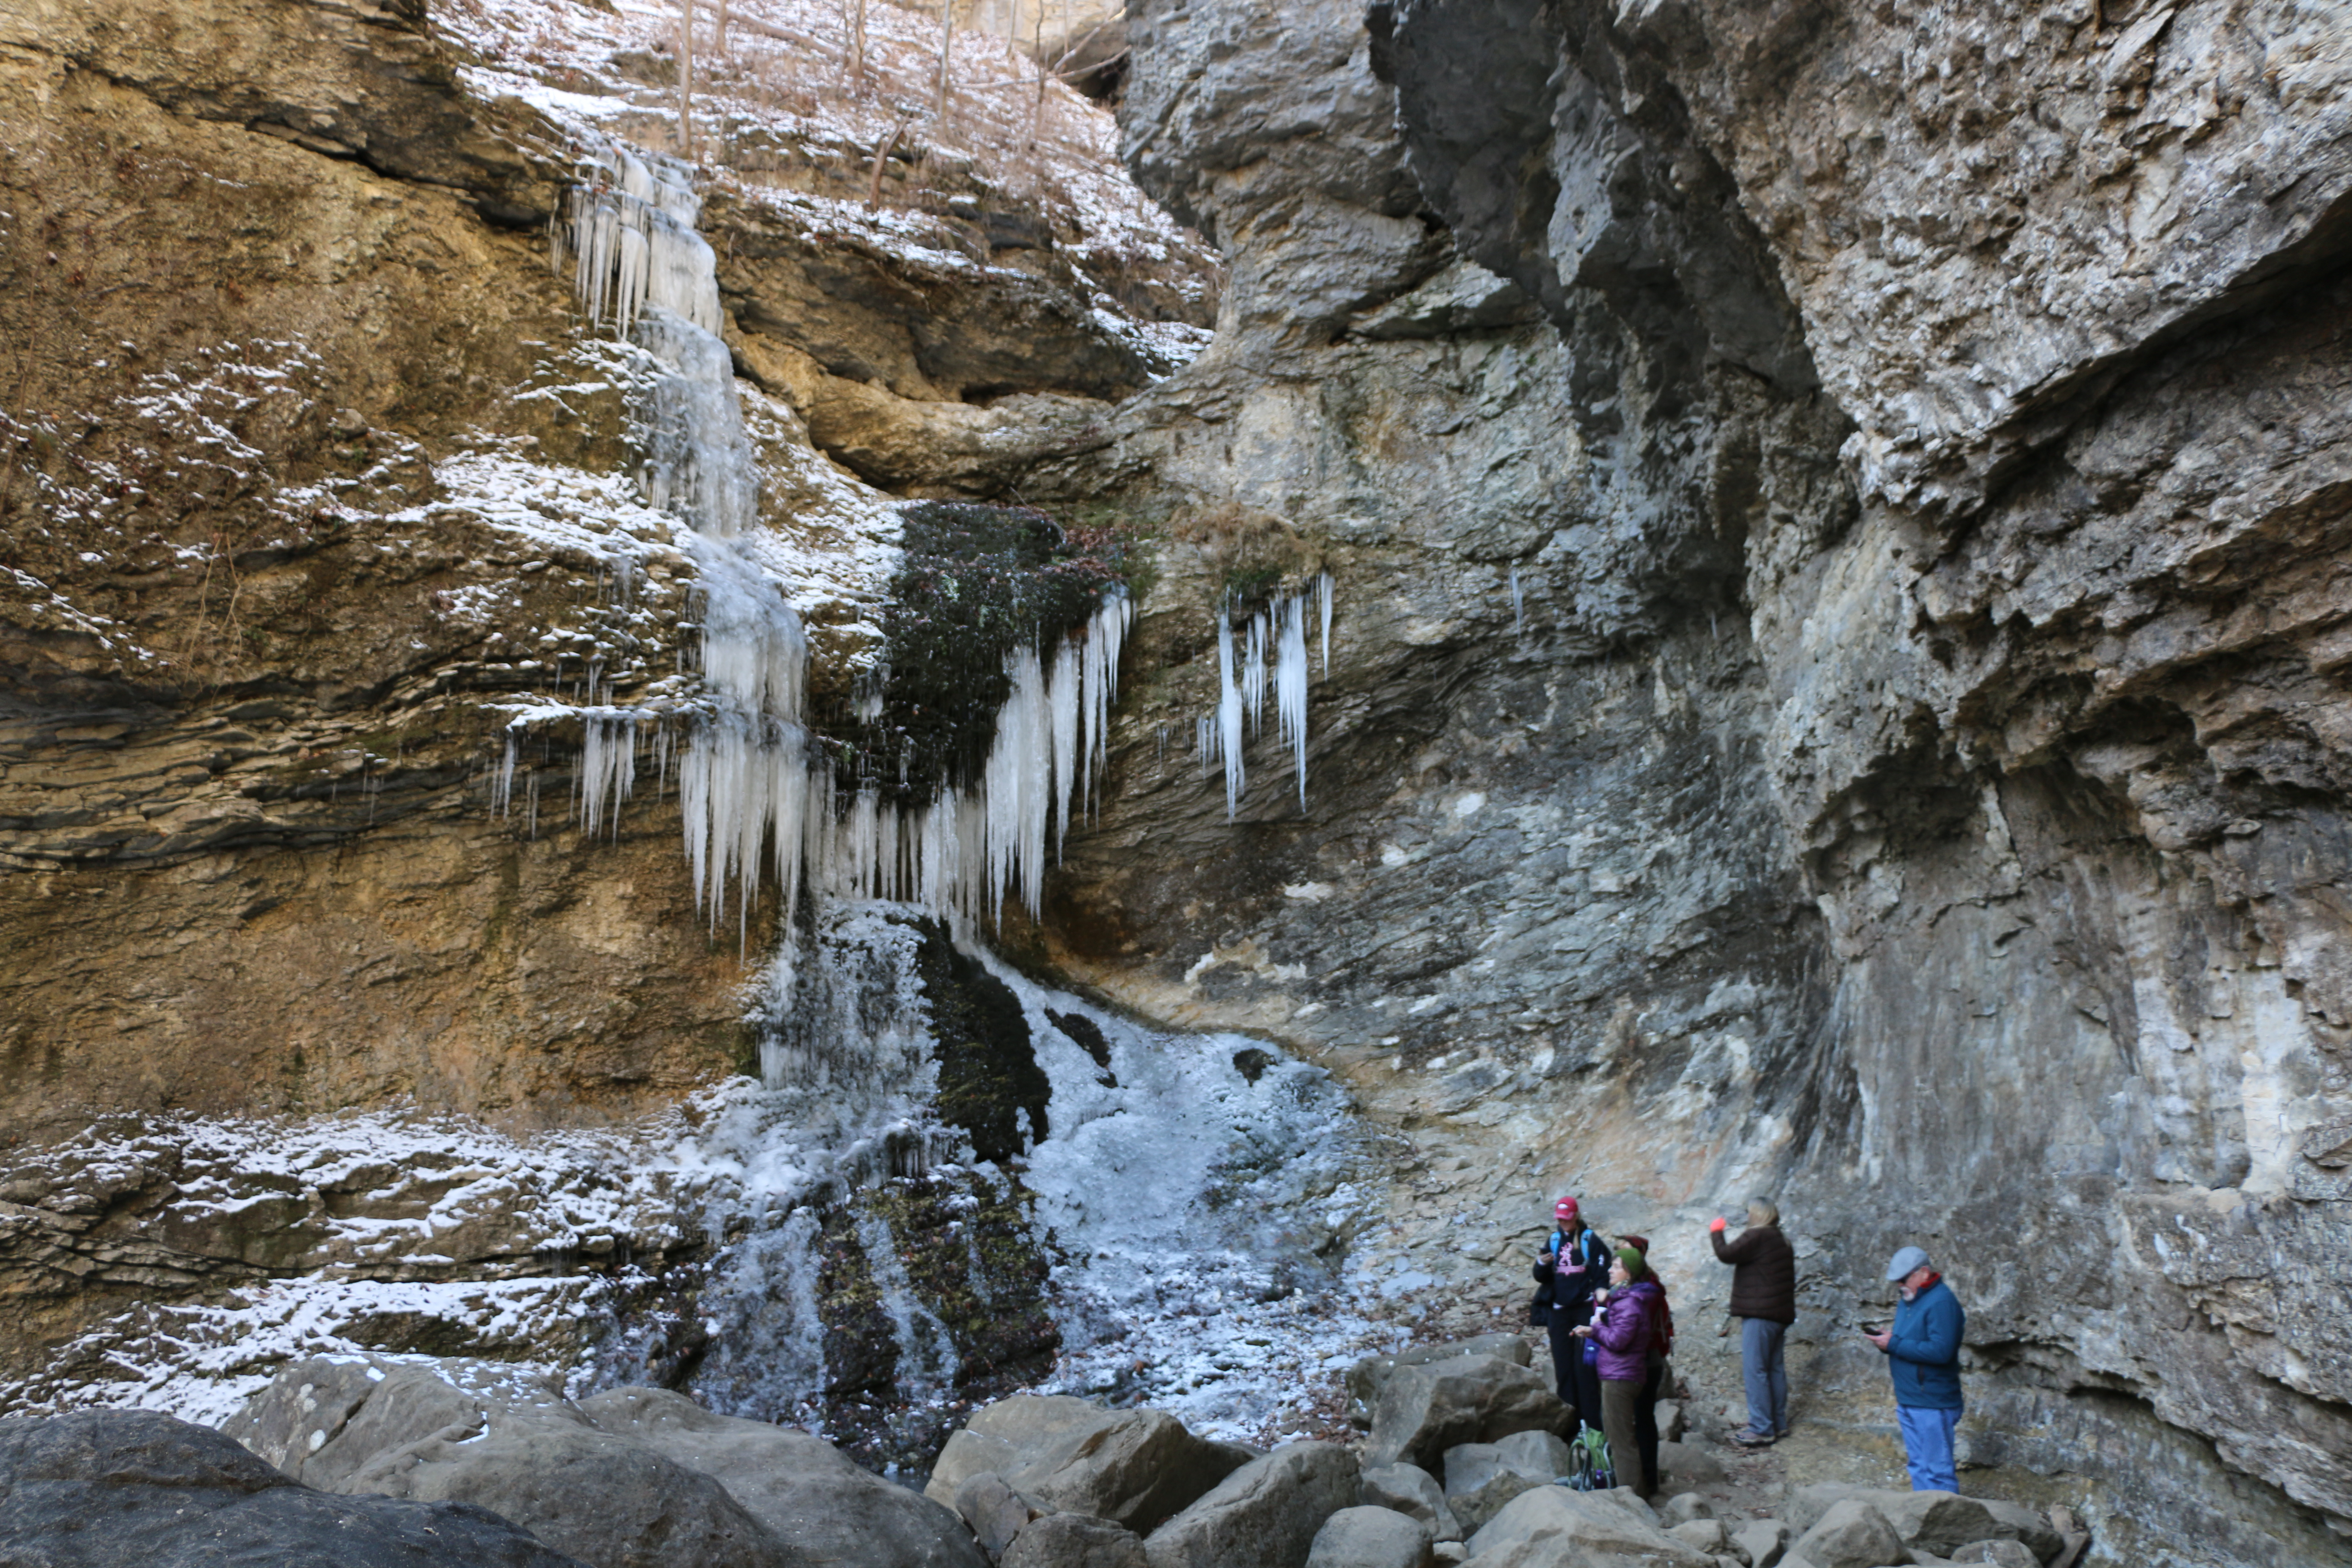 Icy conditions at Eden Falls, Lost Valley Trail